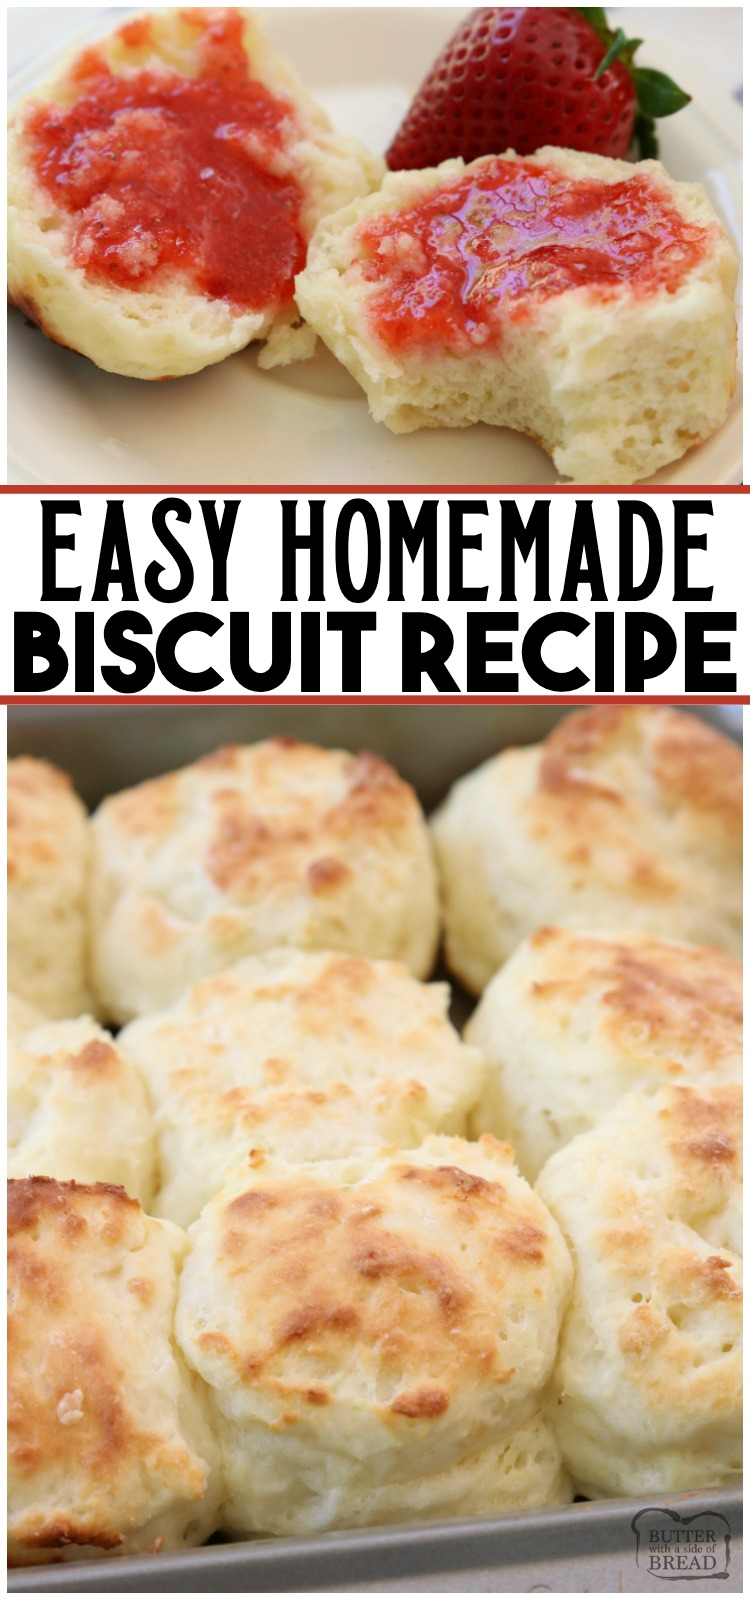 Easy Biscuit Recipe made from scratch in minutes. Perfect soft, flaky texture with fantastic buttery flavor. This will be your new favorite biscuit recipe! Updated with video and expert advice on how to make homemade biscuits. #biscuits #homemade #howtomakebiscuits #bread #baking #biscuit #recipe from BUTTER WITH A SIDE OF BREAD